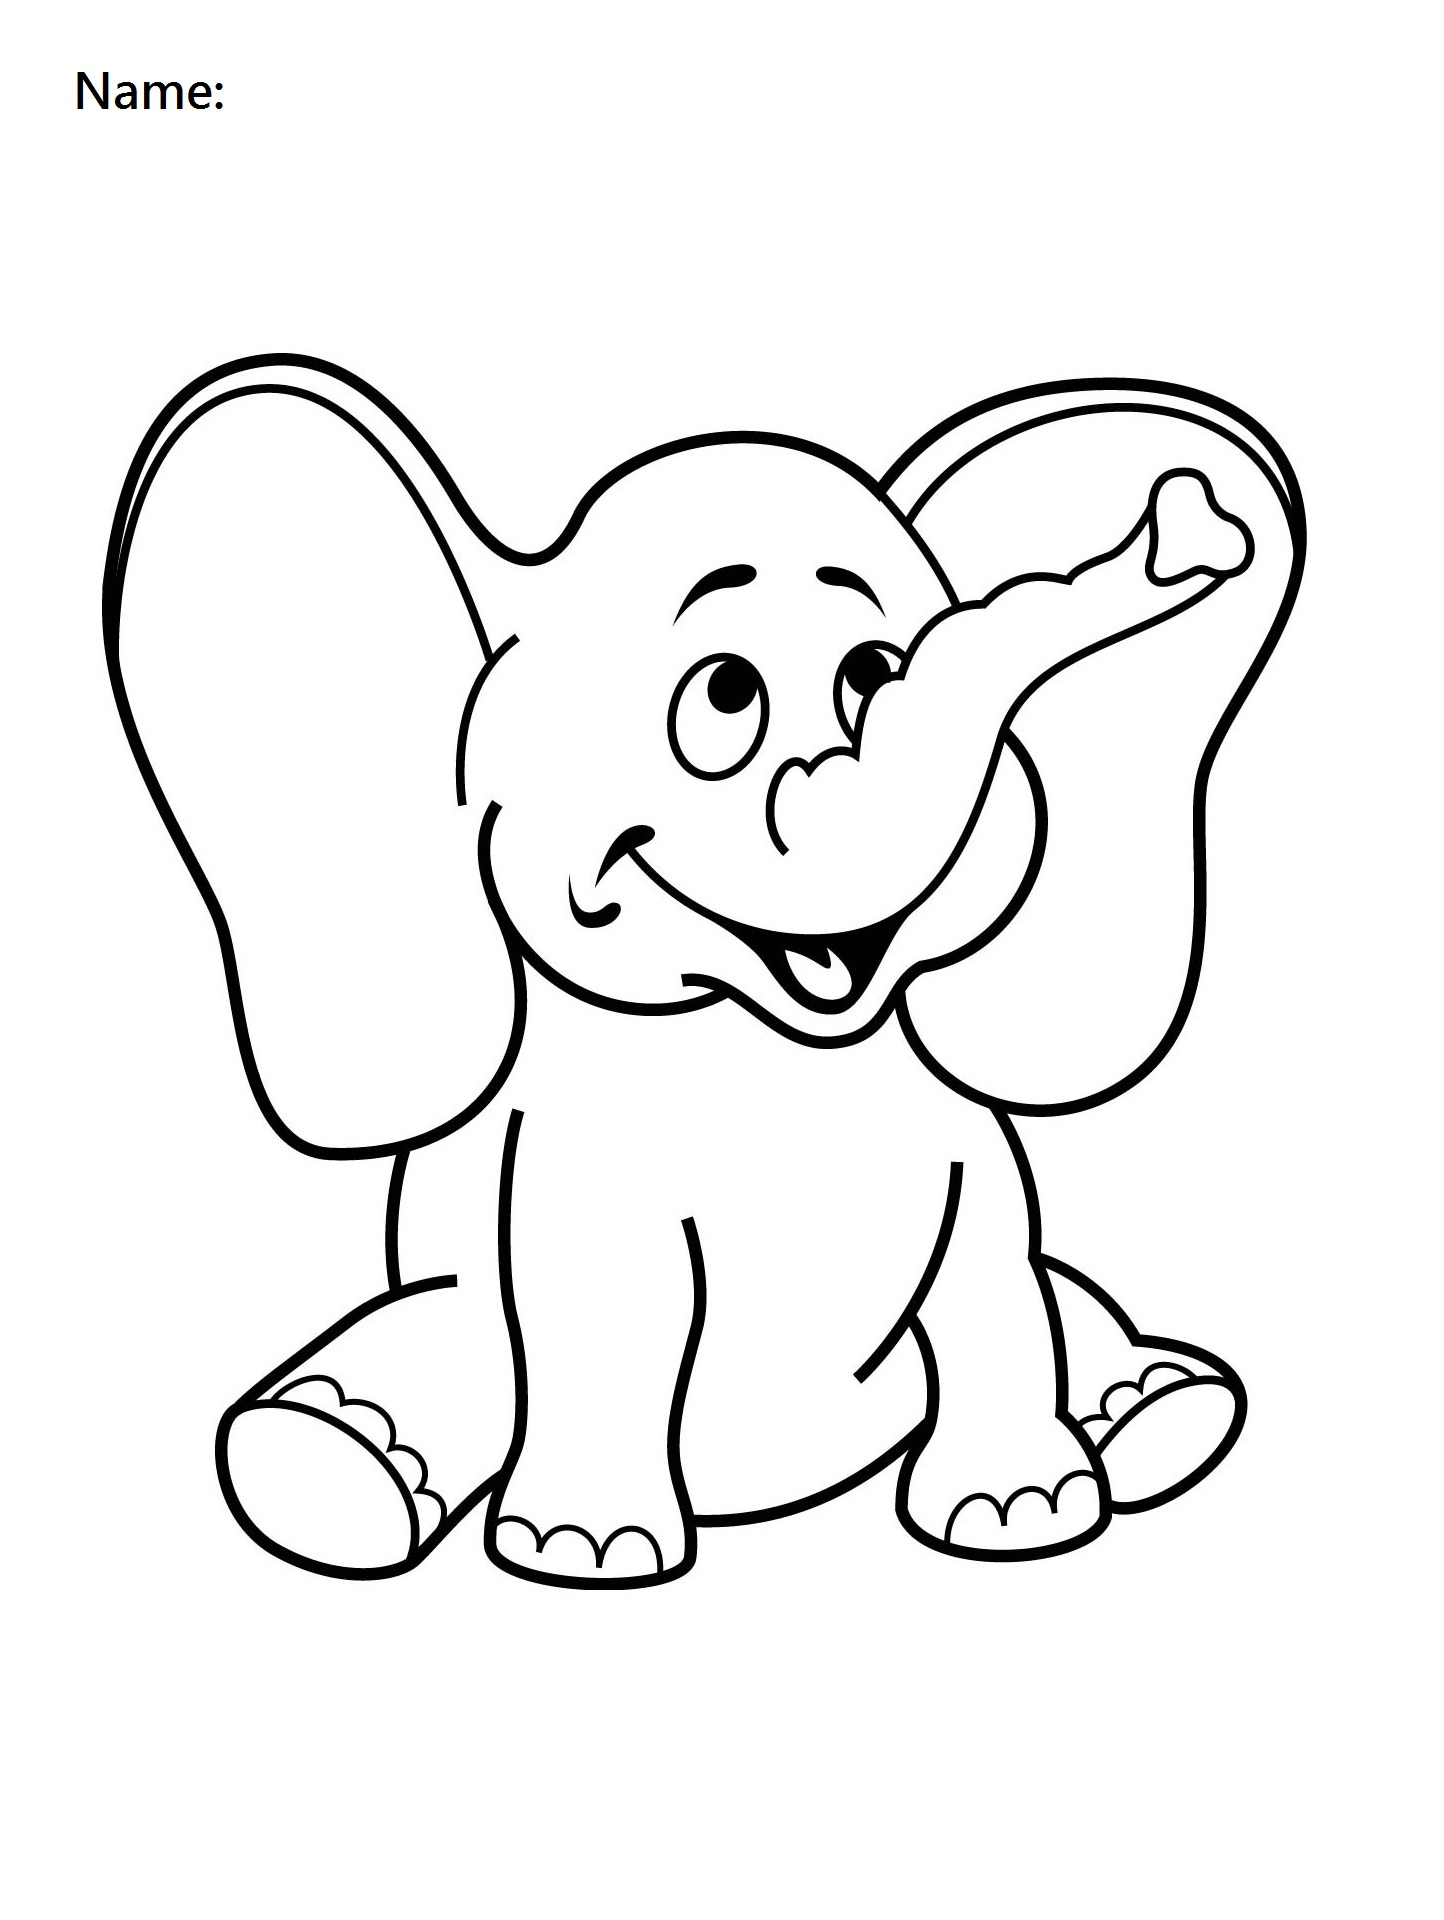 printable coloring pages for 6 year olds 6 year old coloring pages free printable 6 year old coloring year for 6 printable olds pages